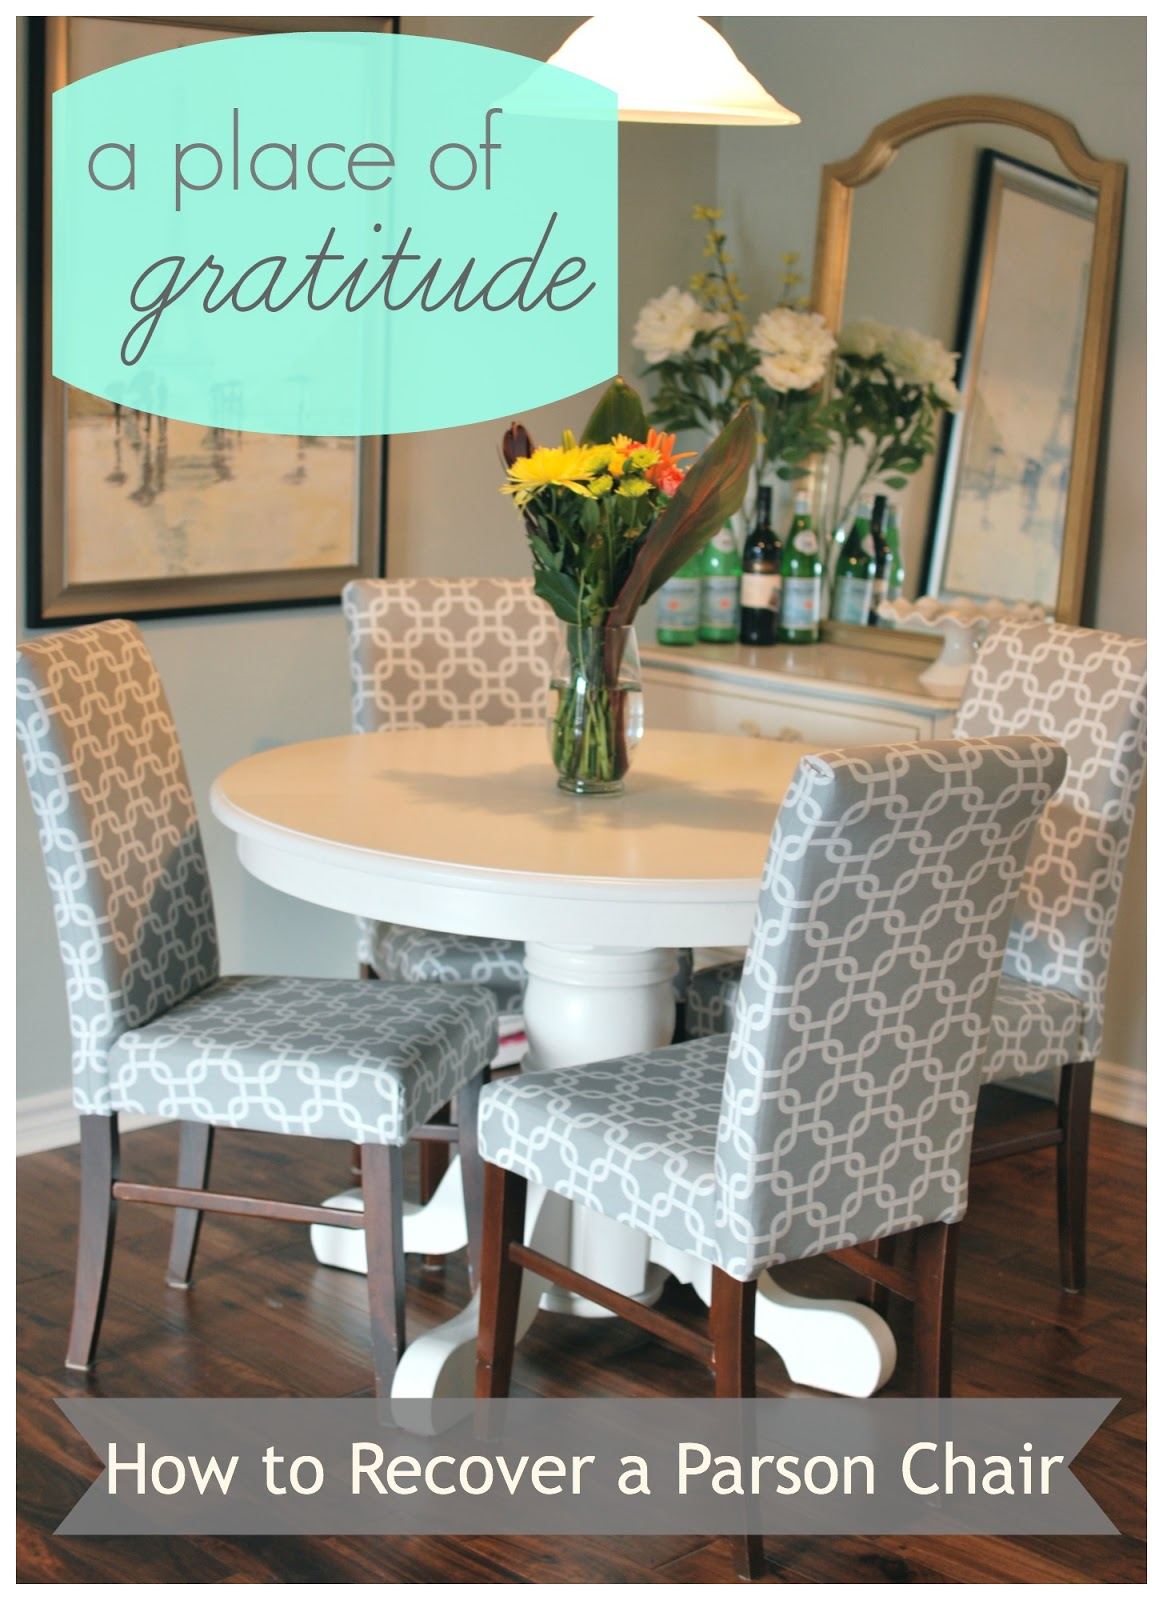 Cost Of Reupholstering A Chair A Place Of Gratitude How To Recover A Parson Chair